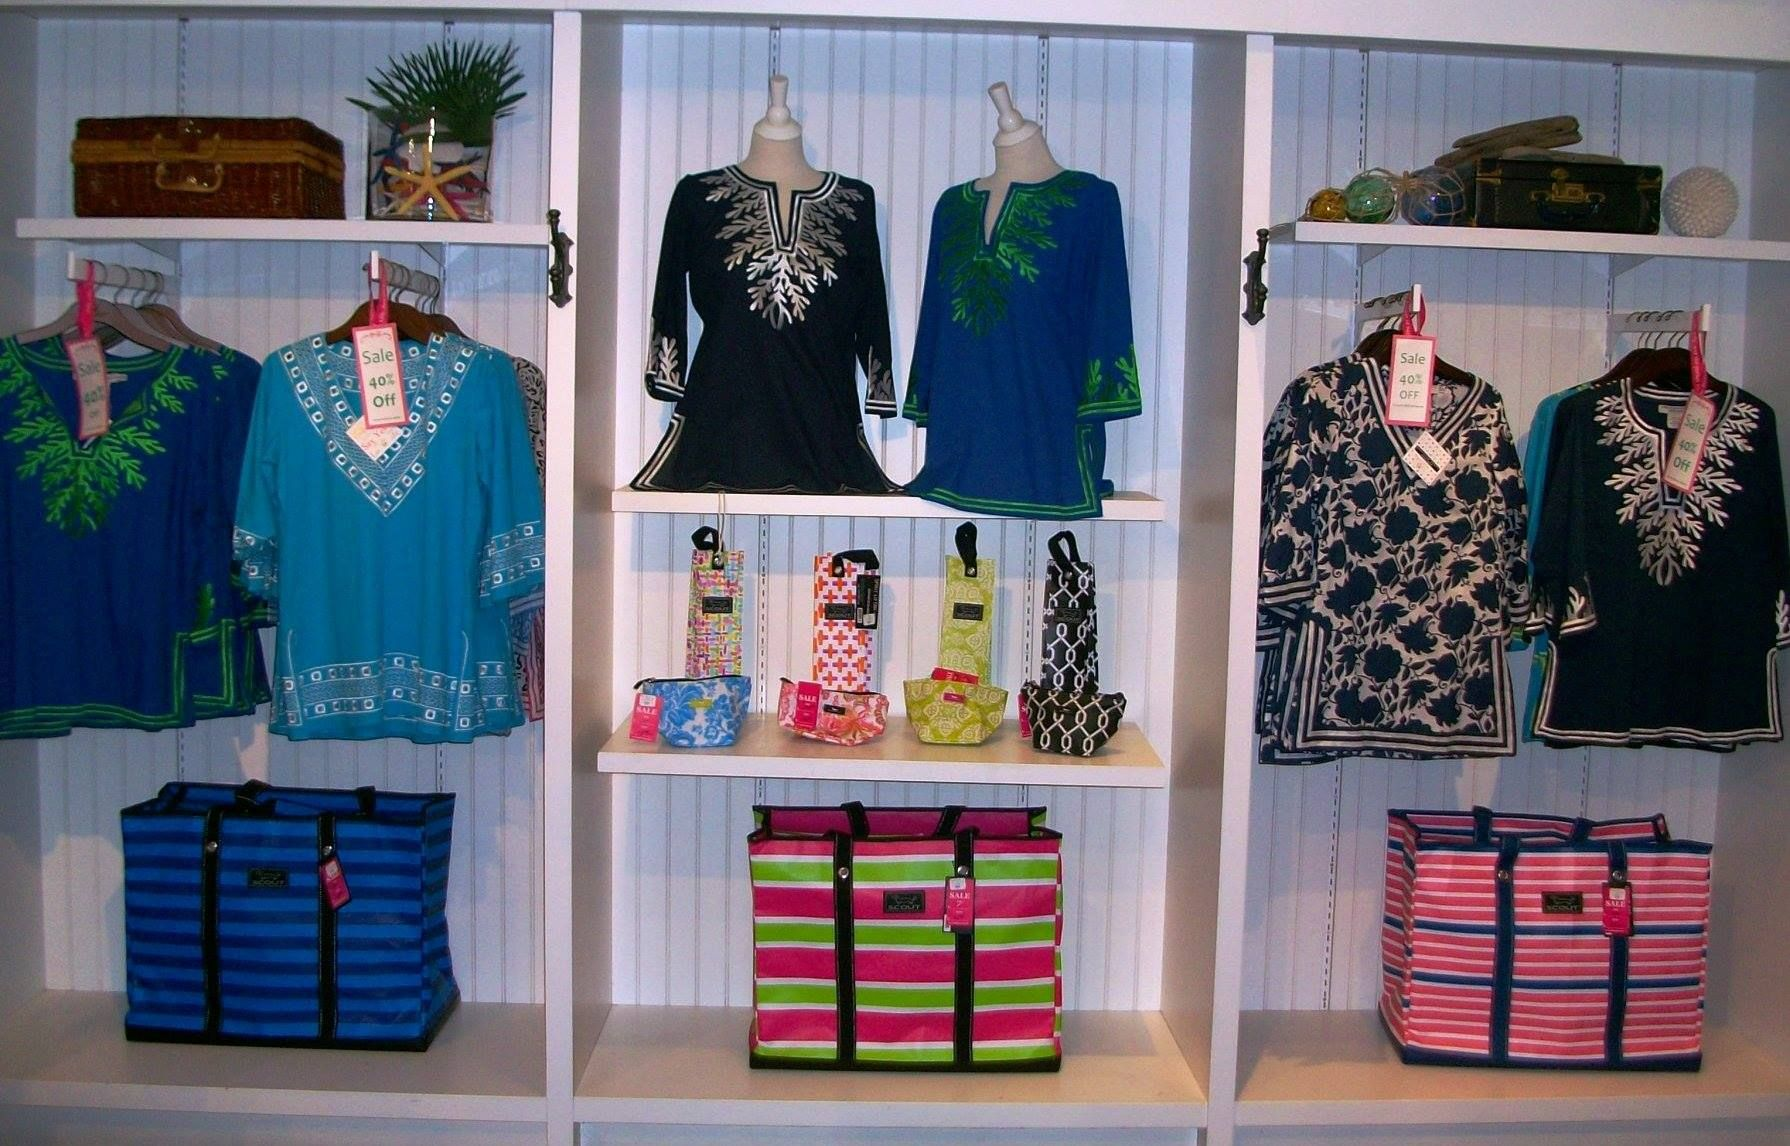 Five Seasons In Manchester Vt Did A Wonderful Job Showcasing Scout Within Their Clothing Display Clothing Displays Clothes Stand Retail Display